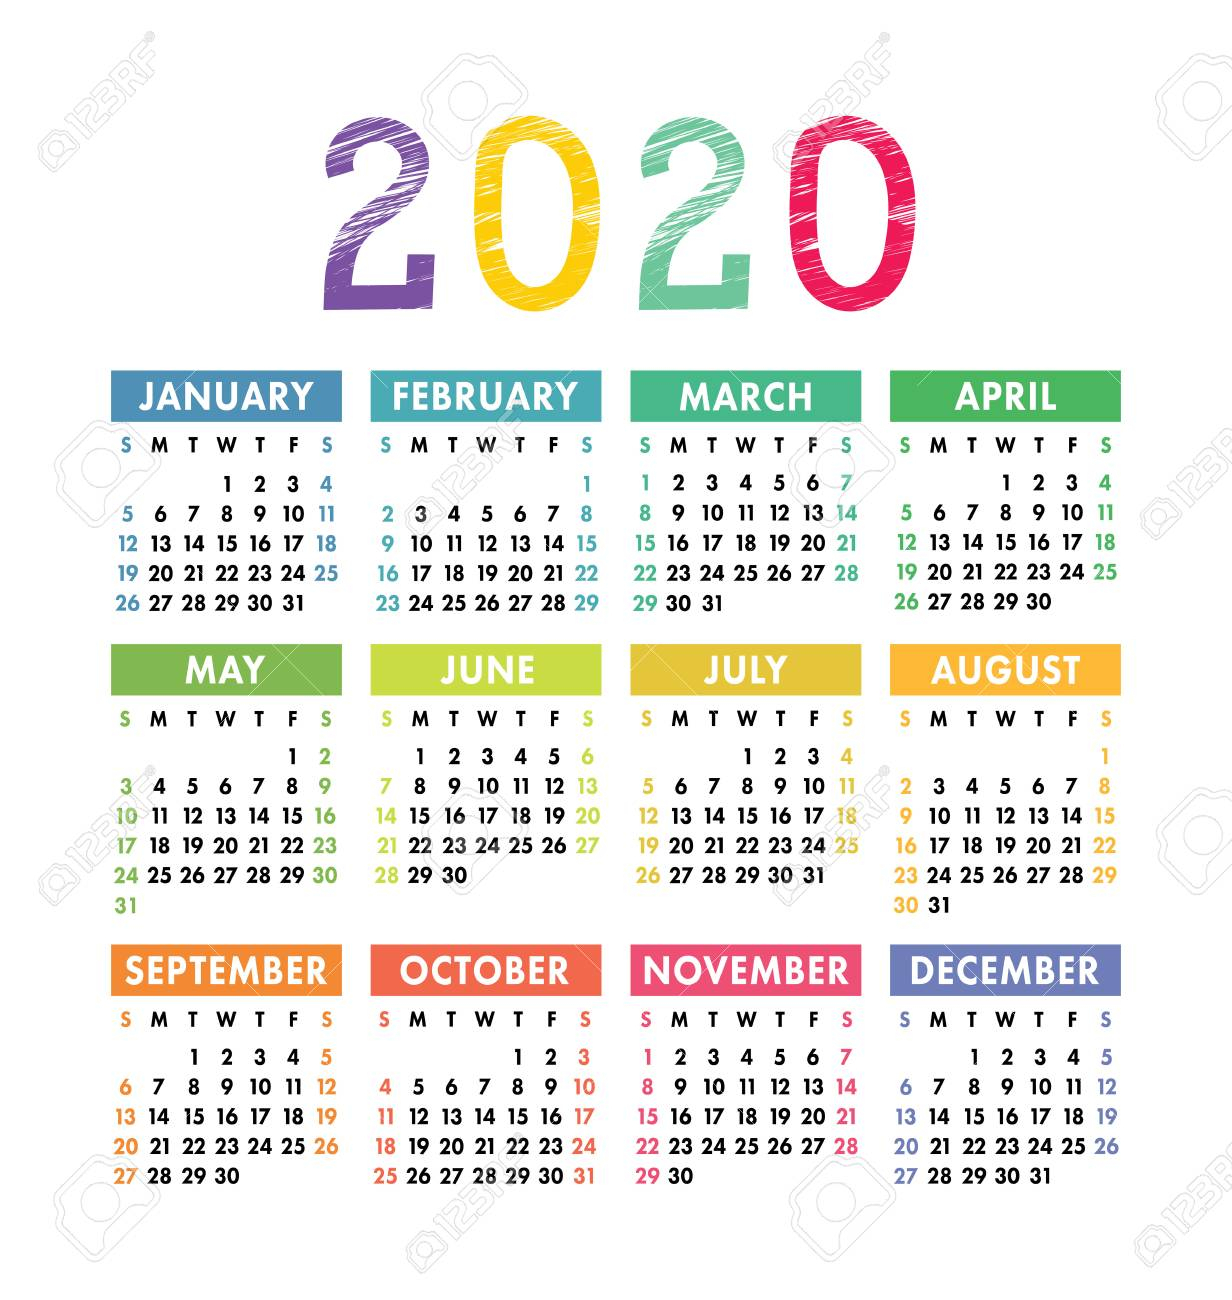 Printable Pocket Calendar 2020 - Wpa.wpart.co throughout Free Printable 2020 Pocket Calendars